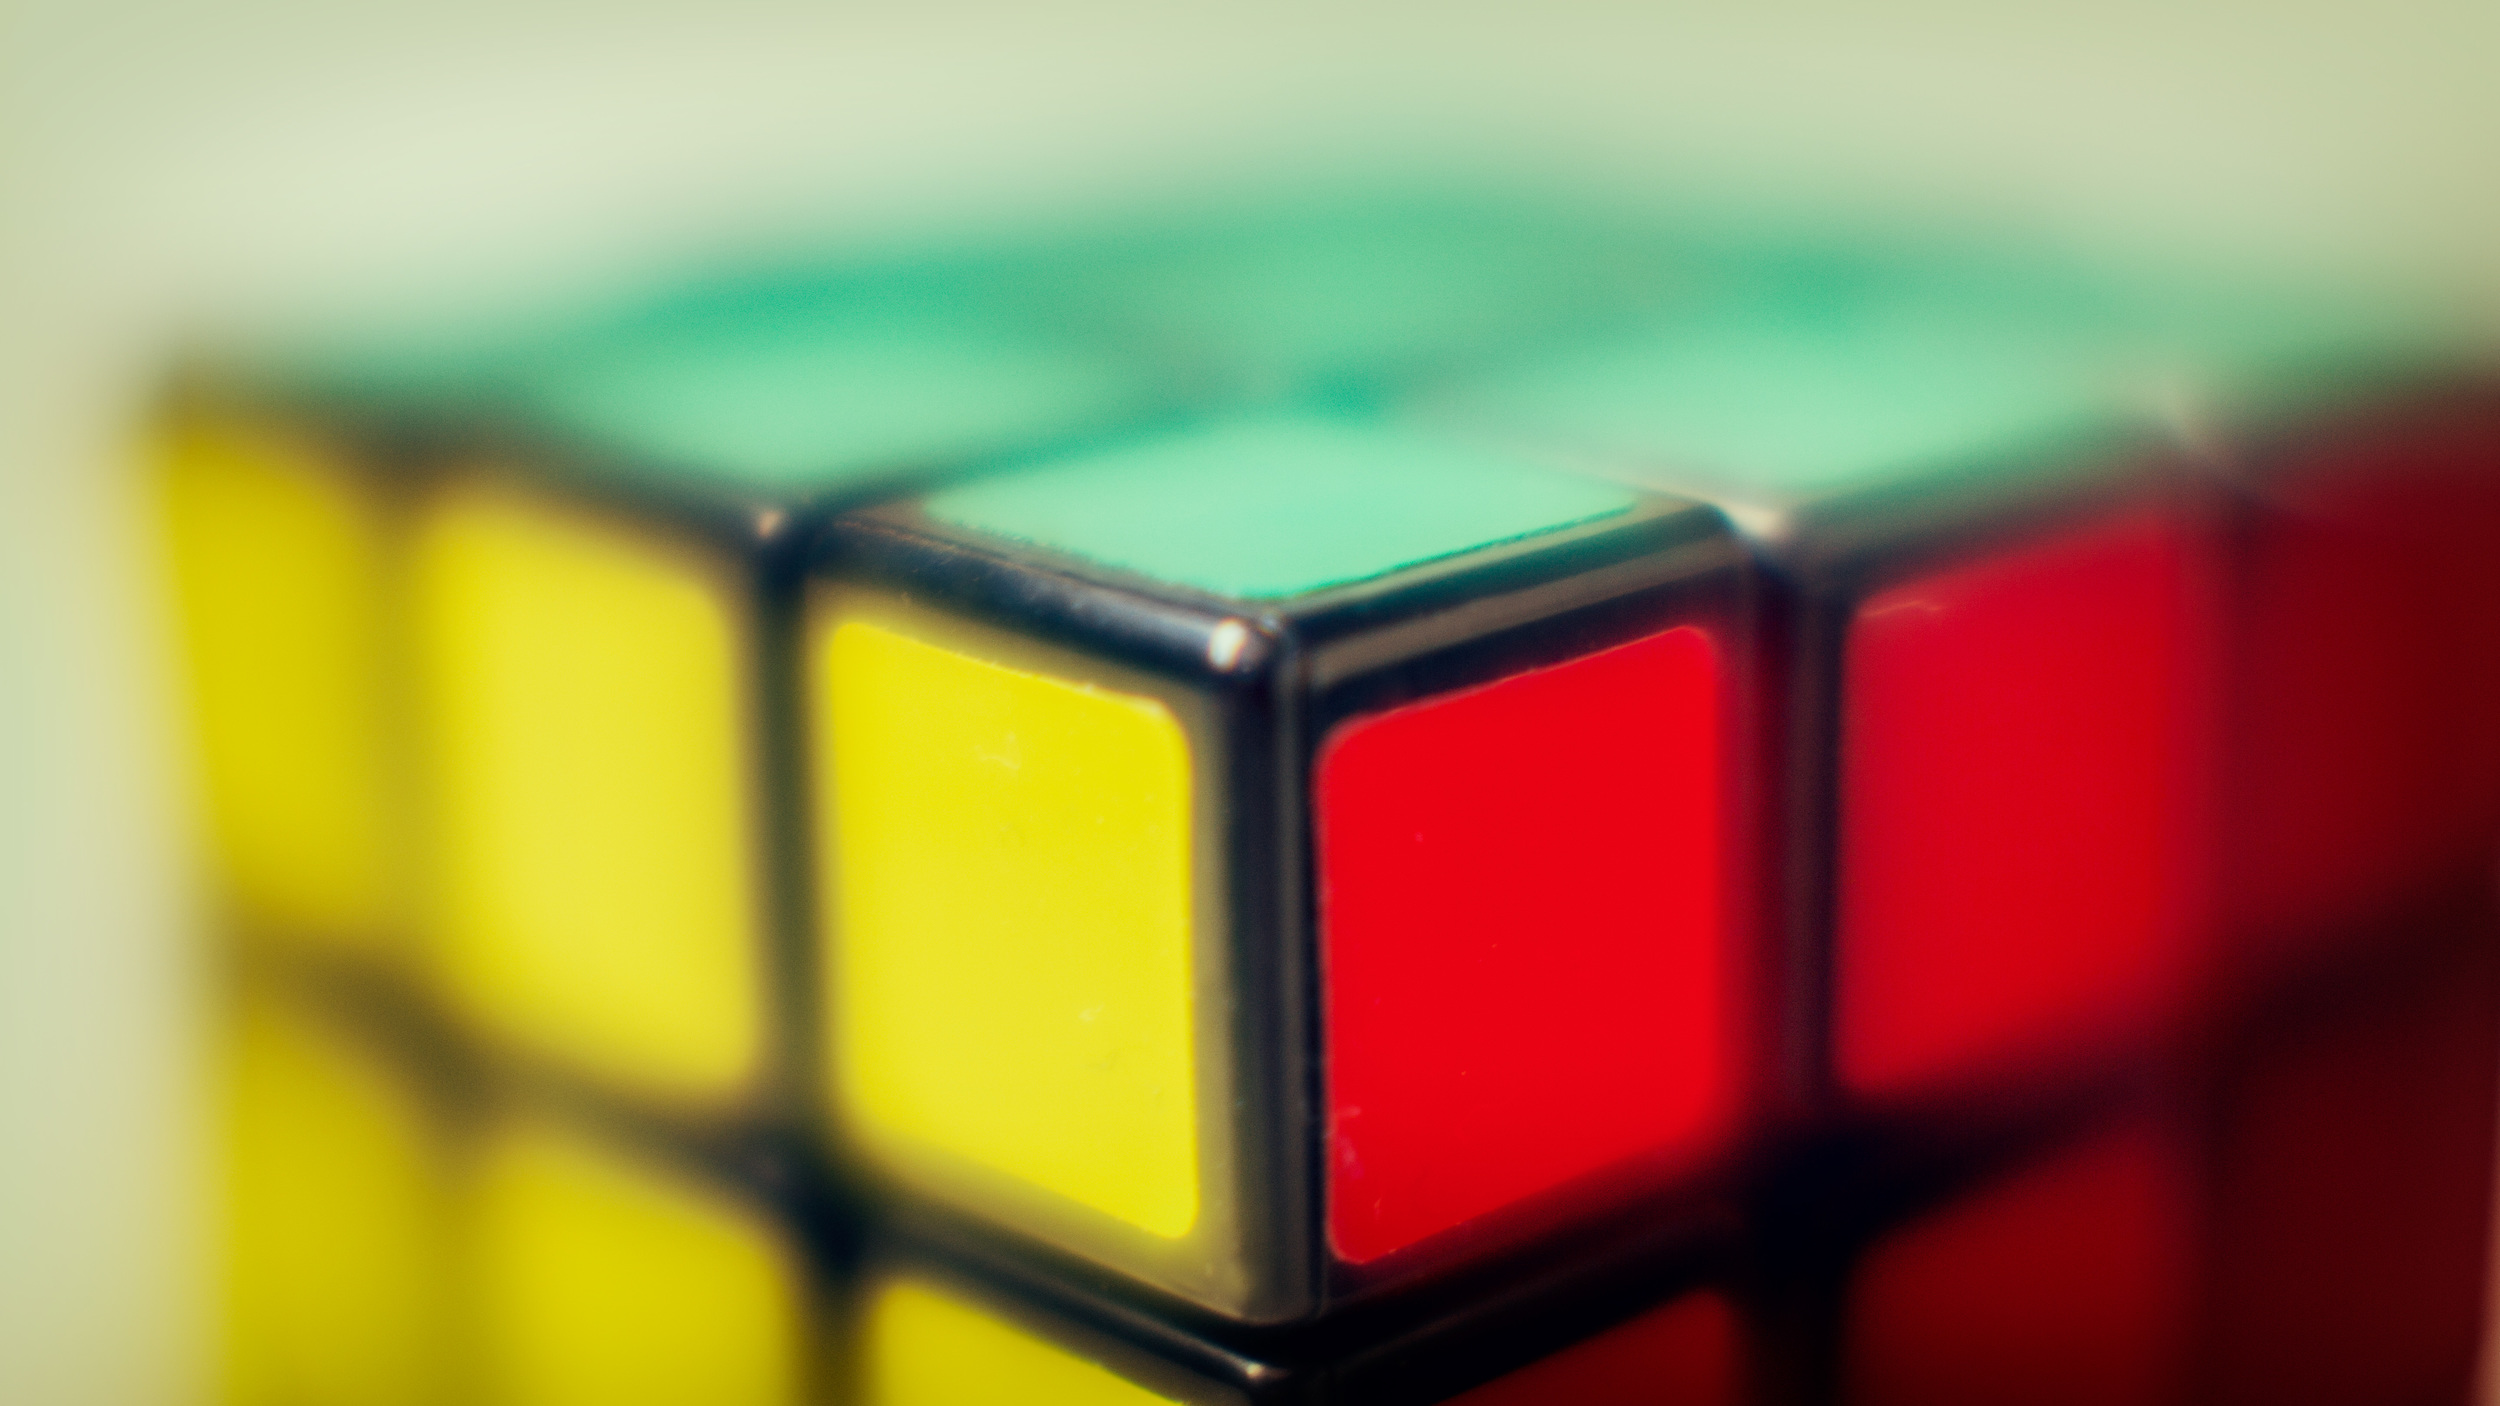 Close-up of Cube3 By Magician Steven Brundage